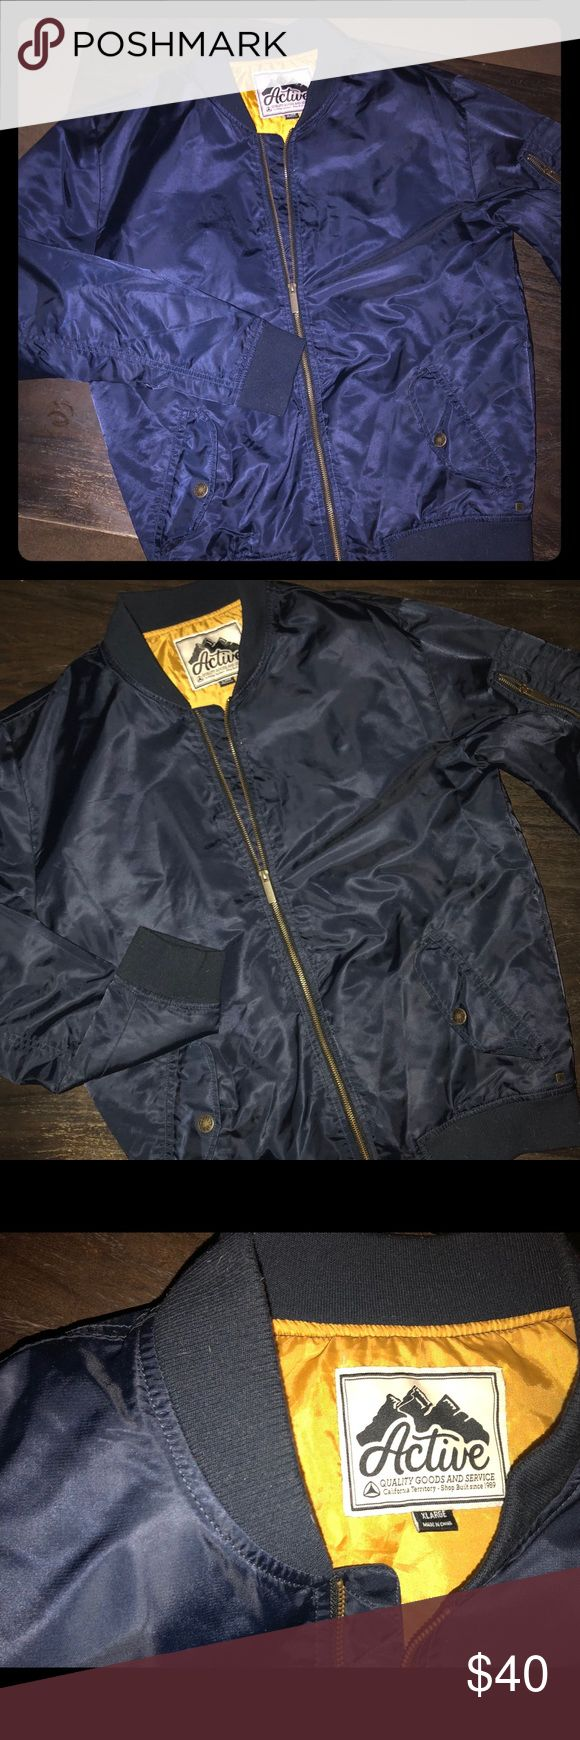 **New Never Used Active Ride Shop Bomber Jacket** Brand new quality bomber jacket. Dark Navy Blue. Can be dressed up with slacks or down with jeans 👖. Active Ride Shop Jackets & Coats Bomber & Varsity